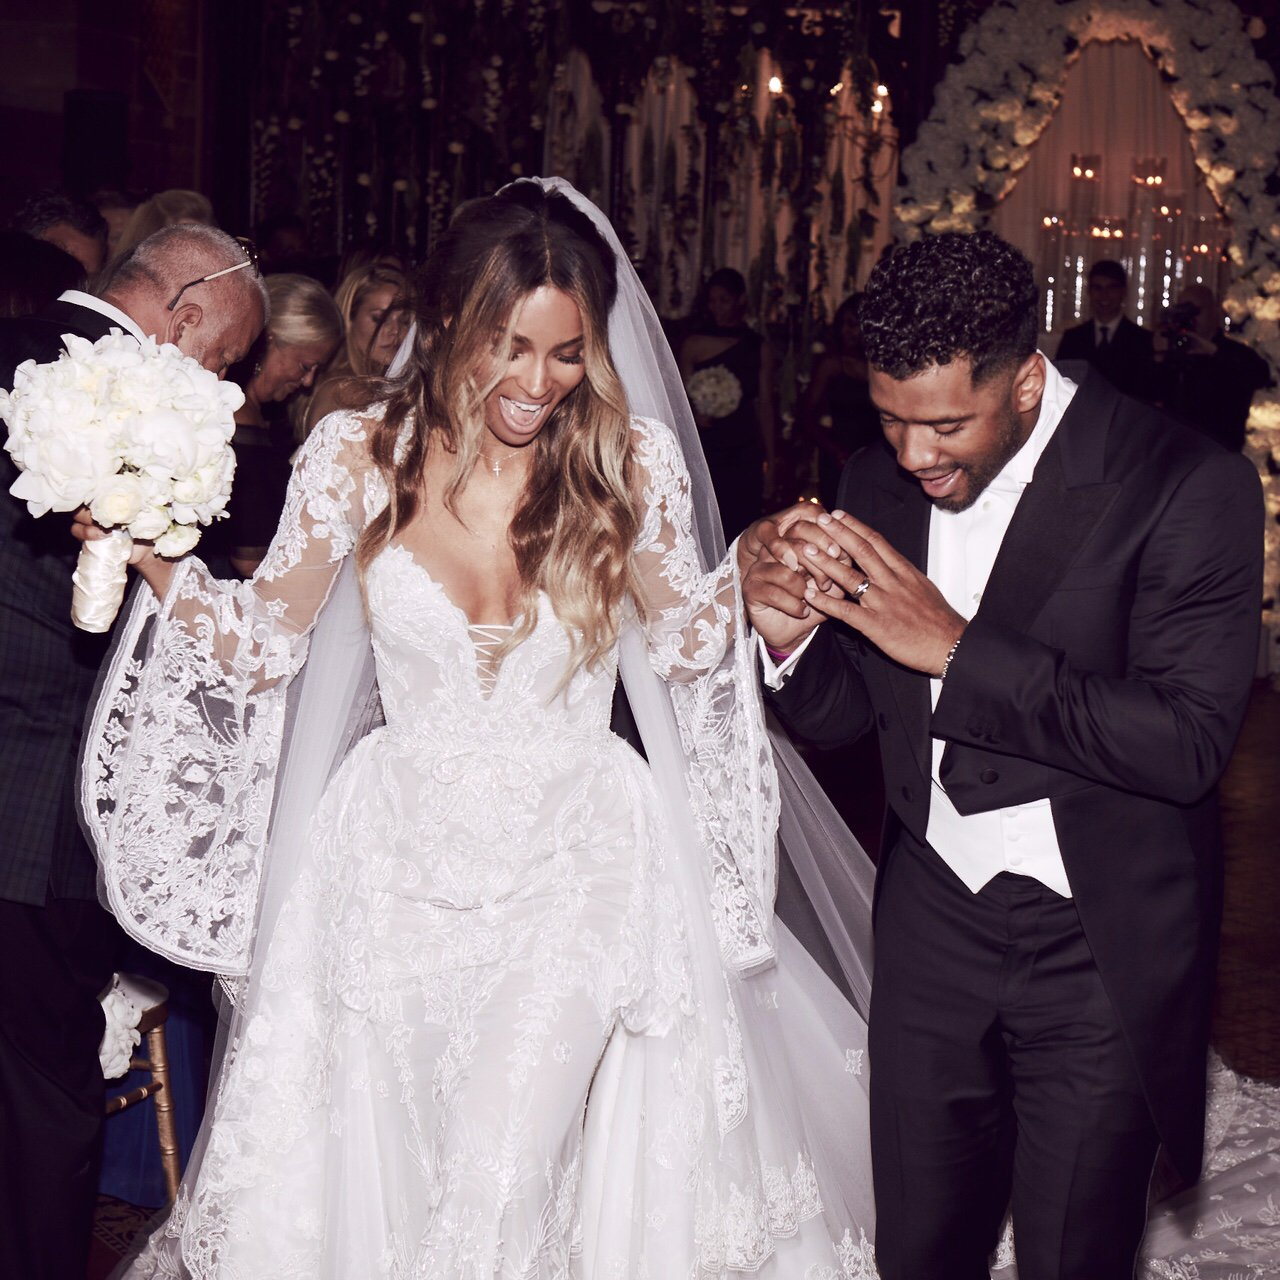 Seahawks quarterback Russell Wilson marries girlfriend Ciara